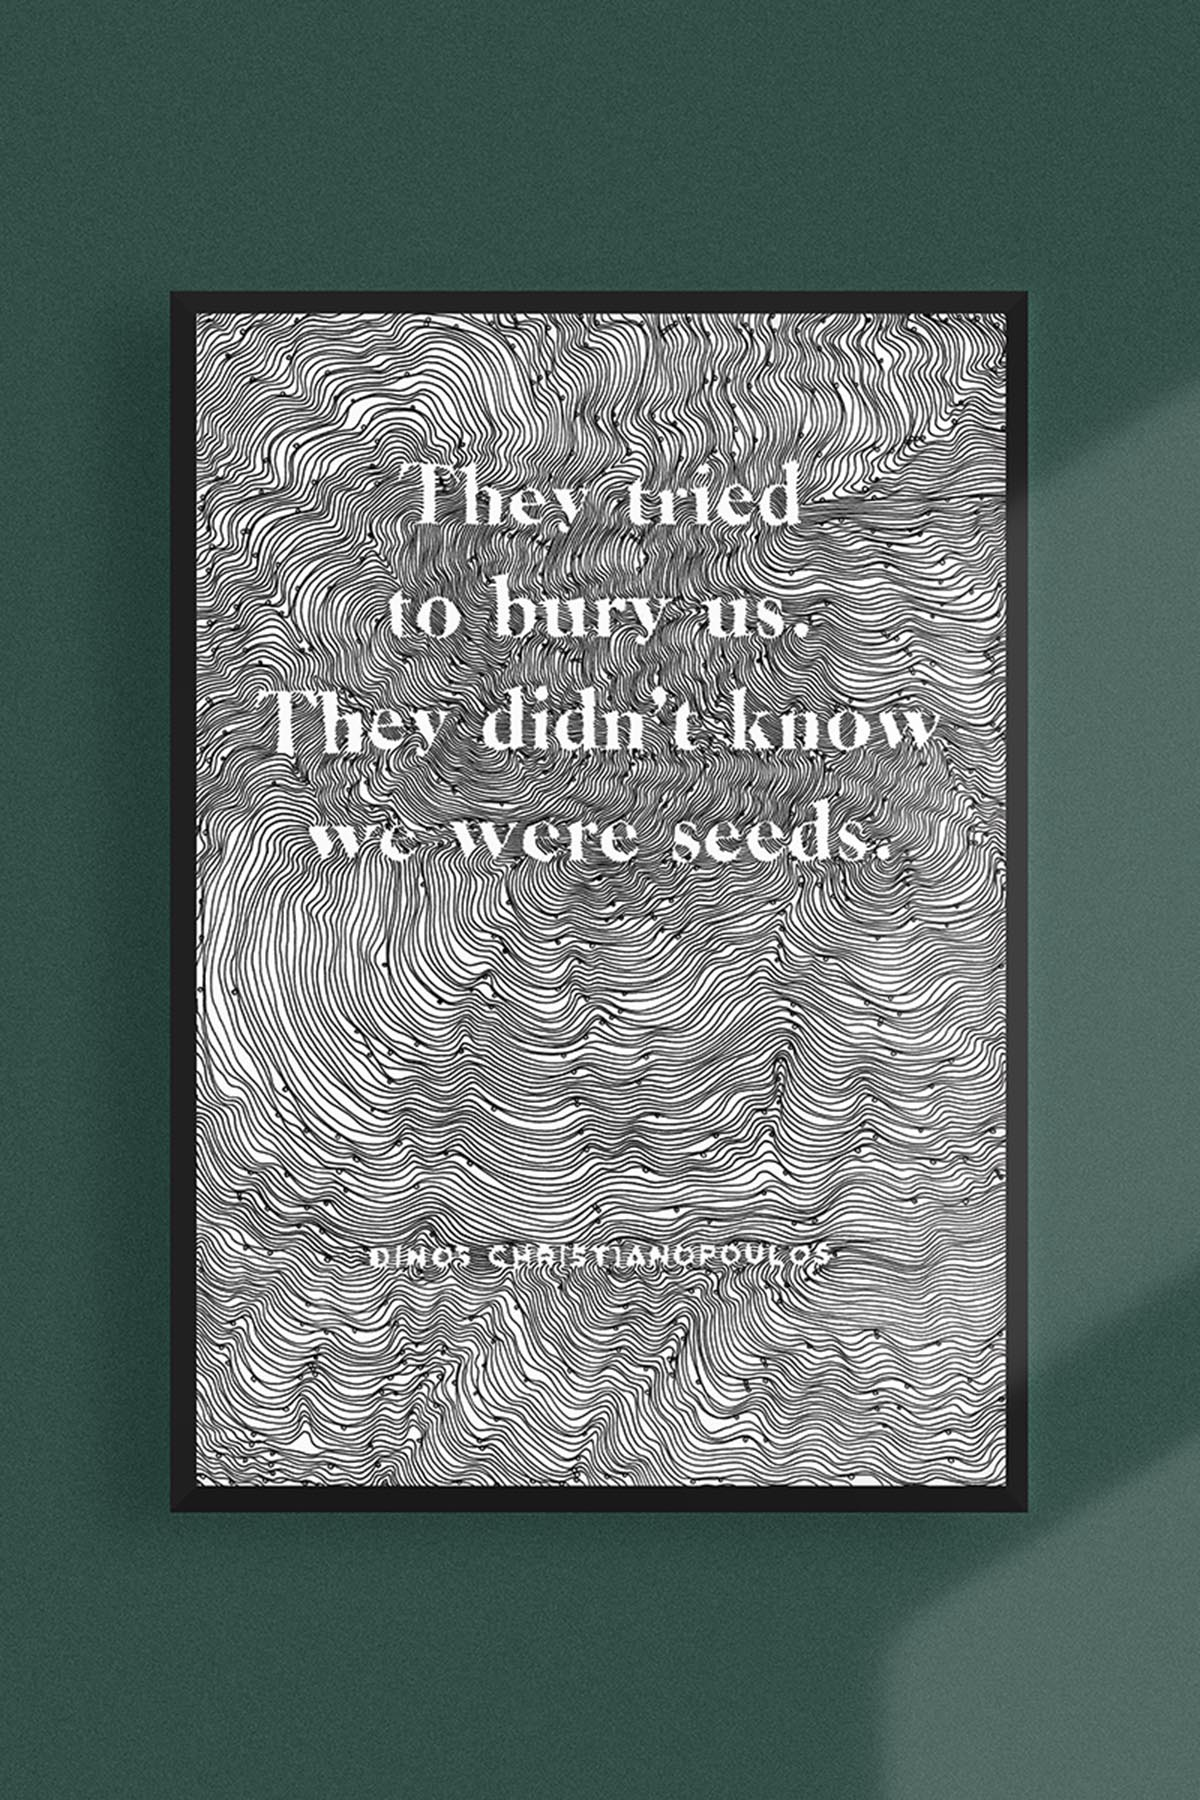 They tried to bury us. They didn't know we were seeds Printable art Print -